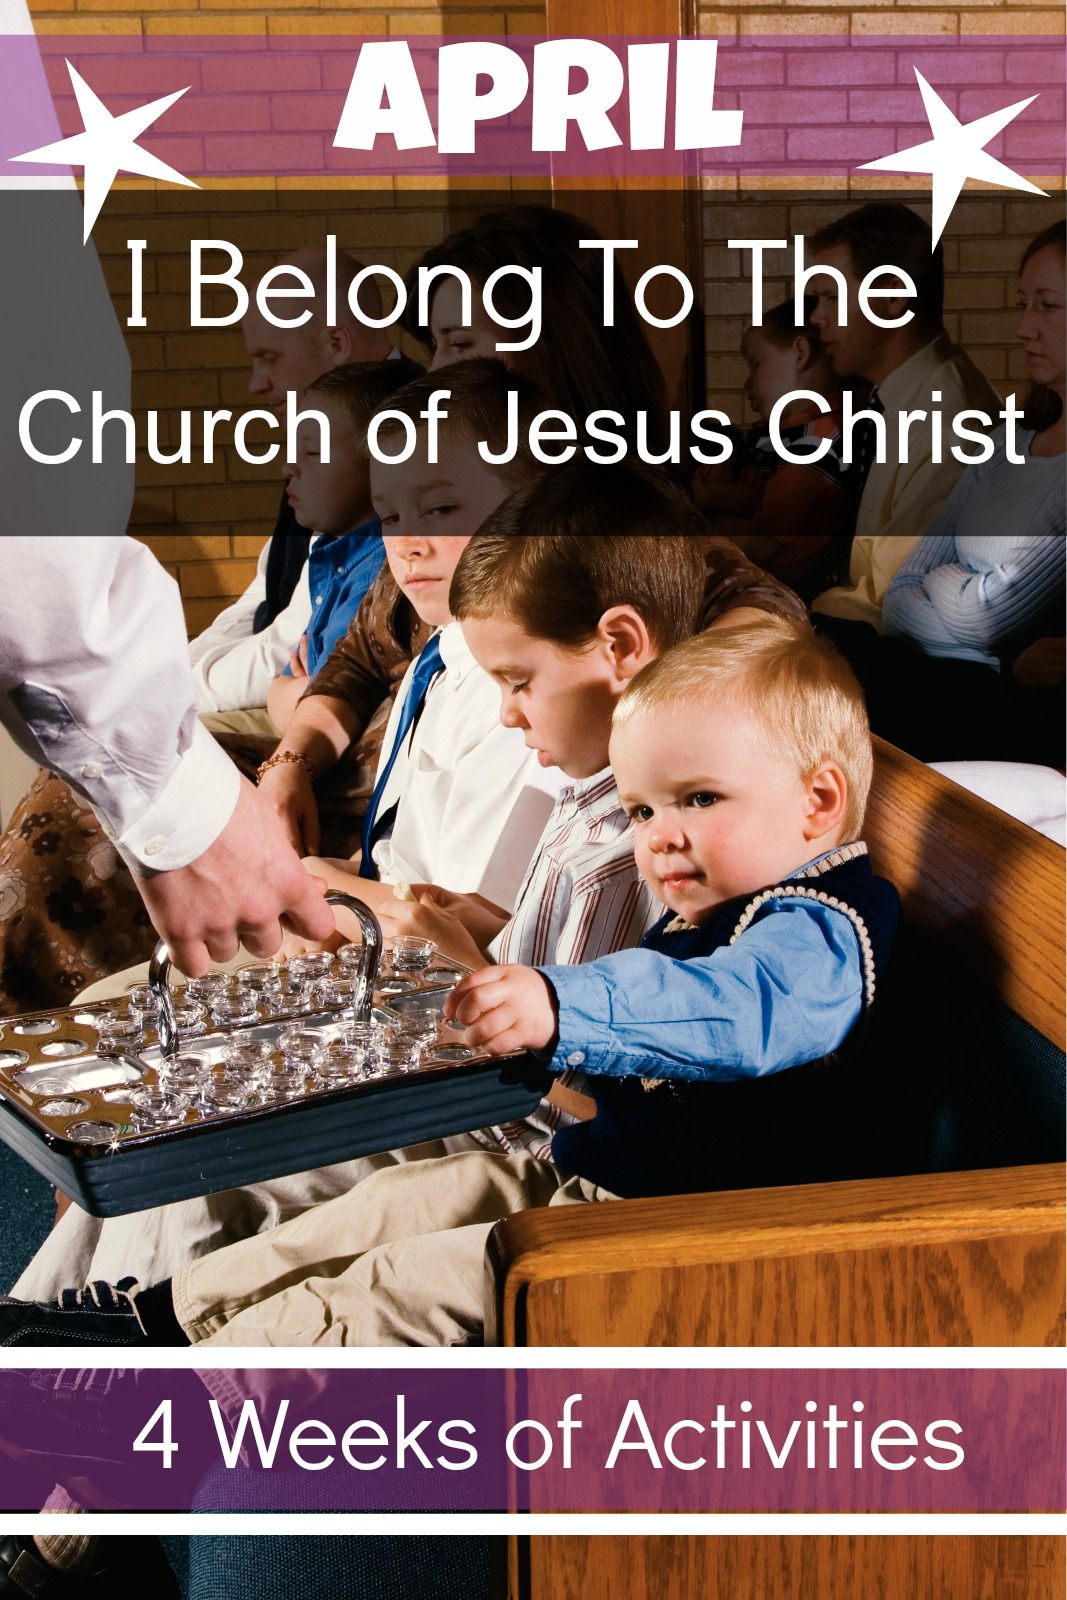 April: I Belong To The Church of Jesus Christ